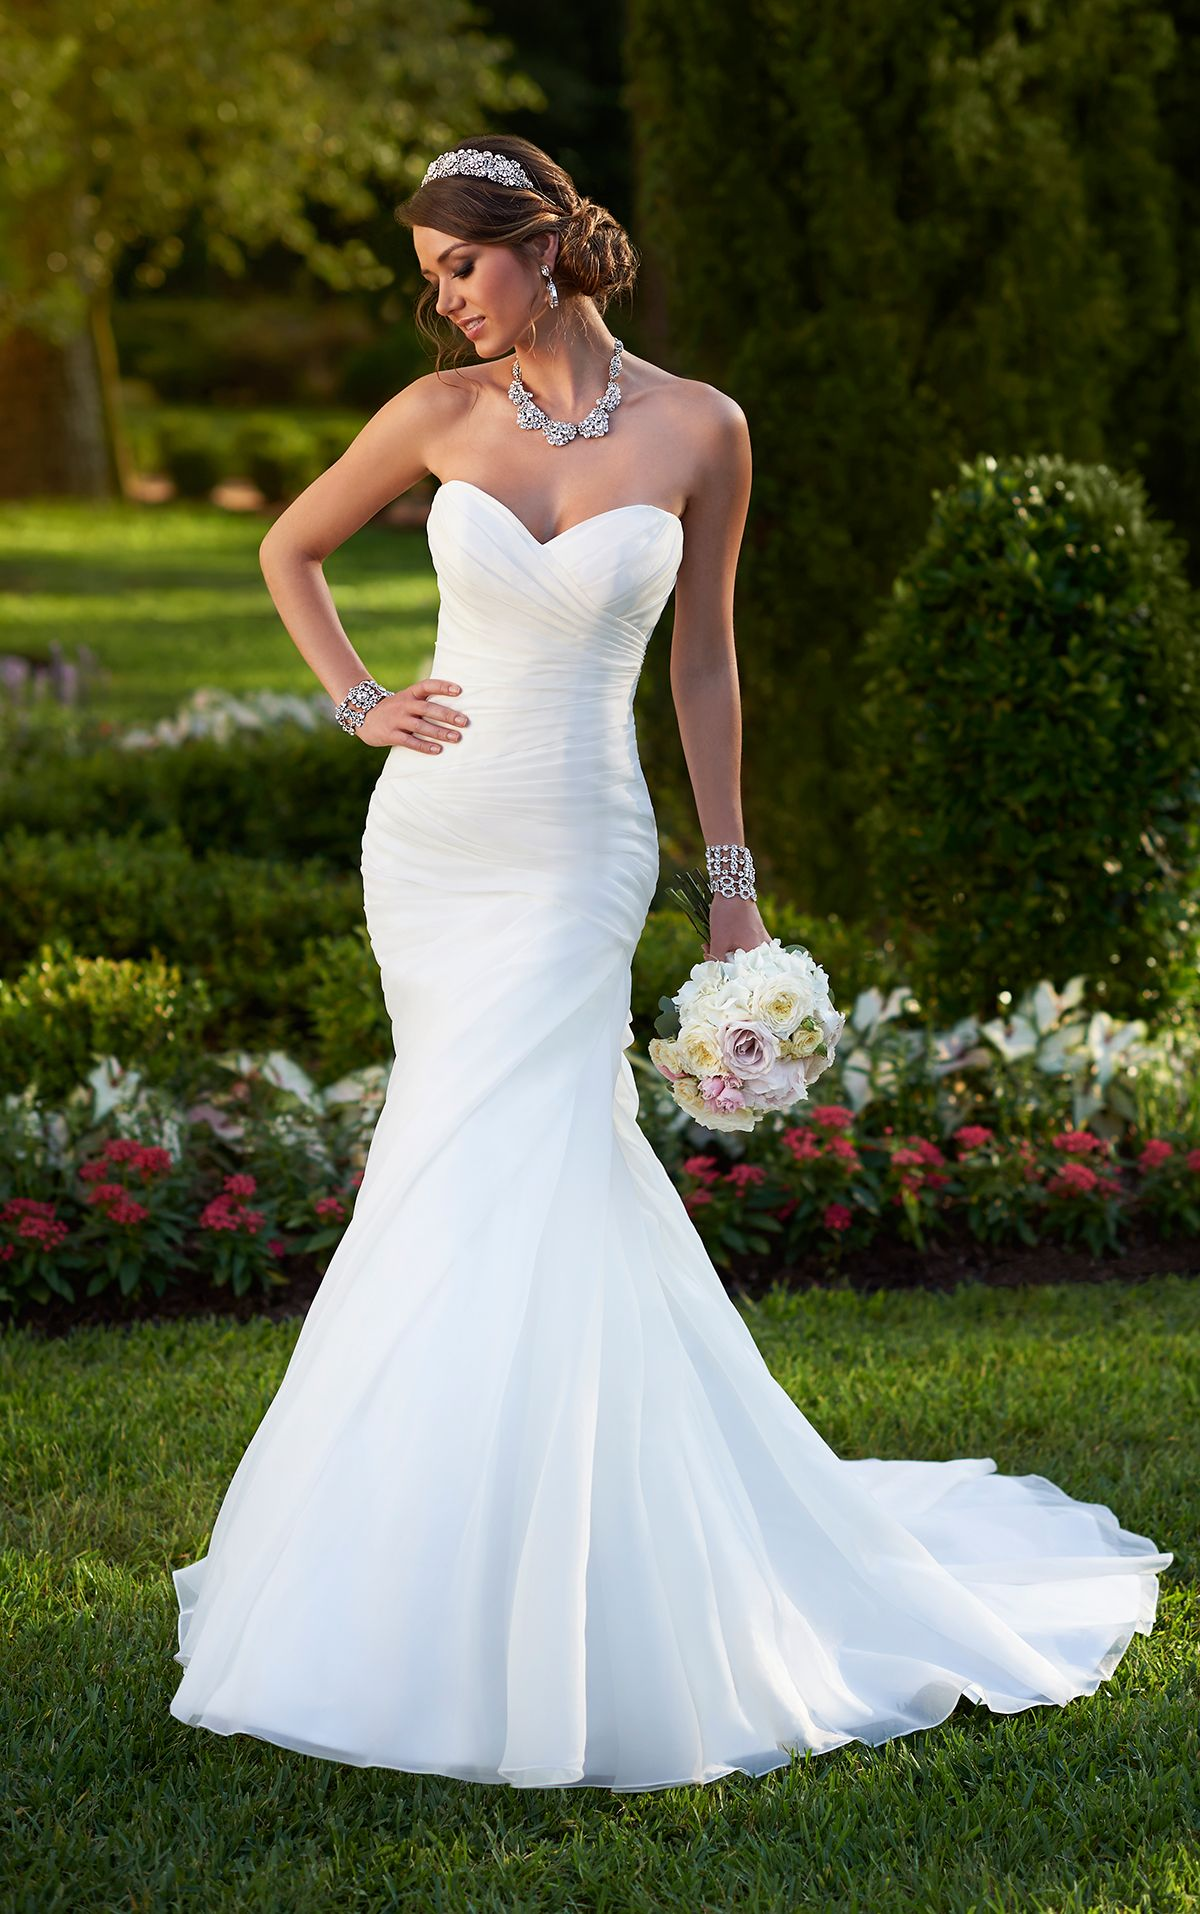 Attractive Flare Corset Wedding Dress Full Bodice And A Full Skirt Justbelow Organza Fit Skirt Look Through Sweeart Neckline Strapless Wedding Gownsfeaturing An Asymmetrical Ruched Bodice